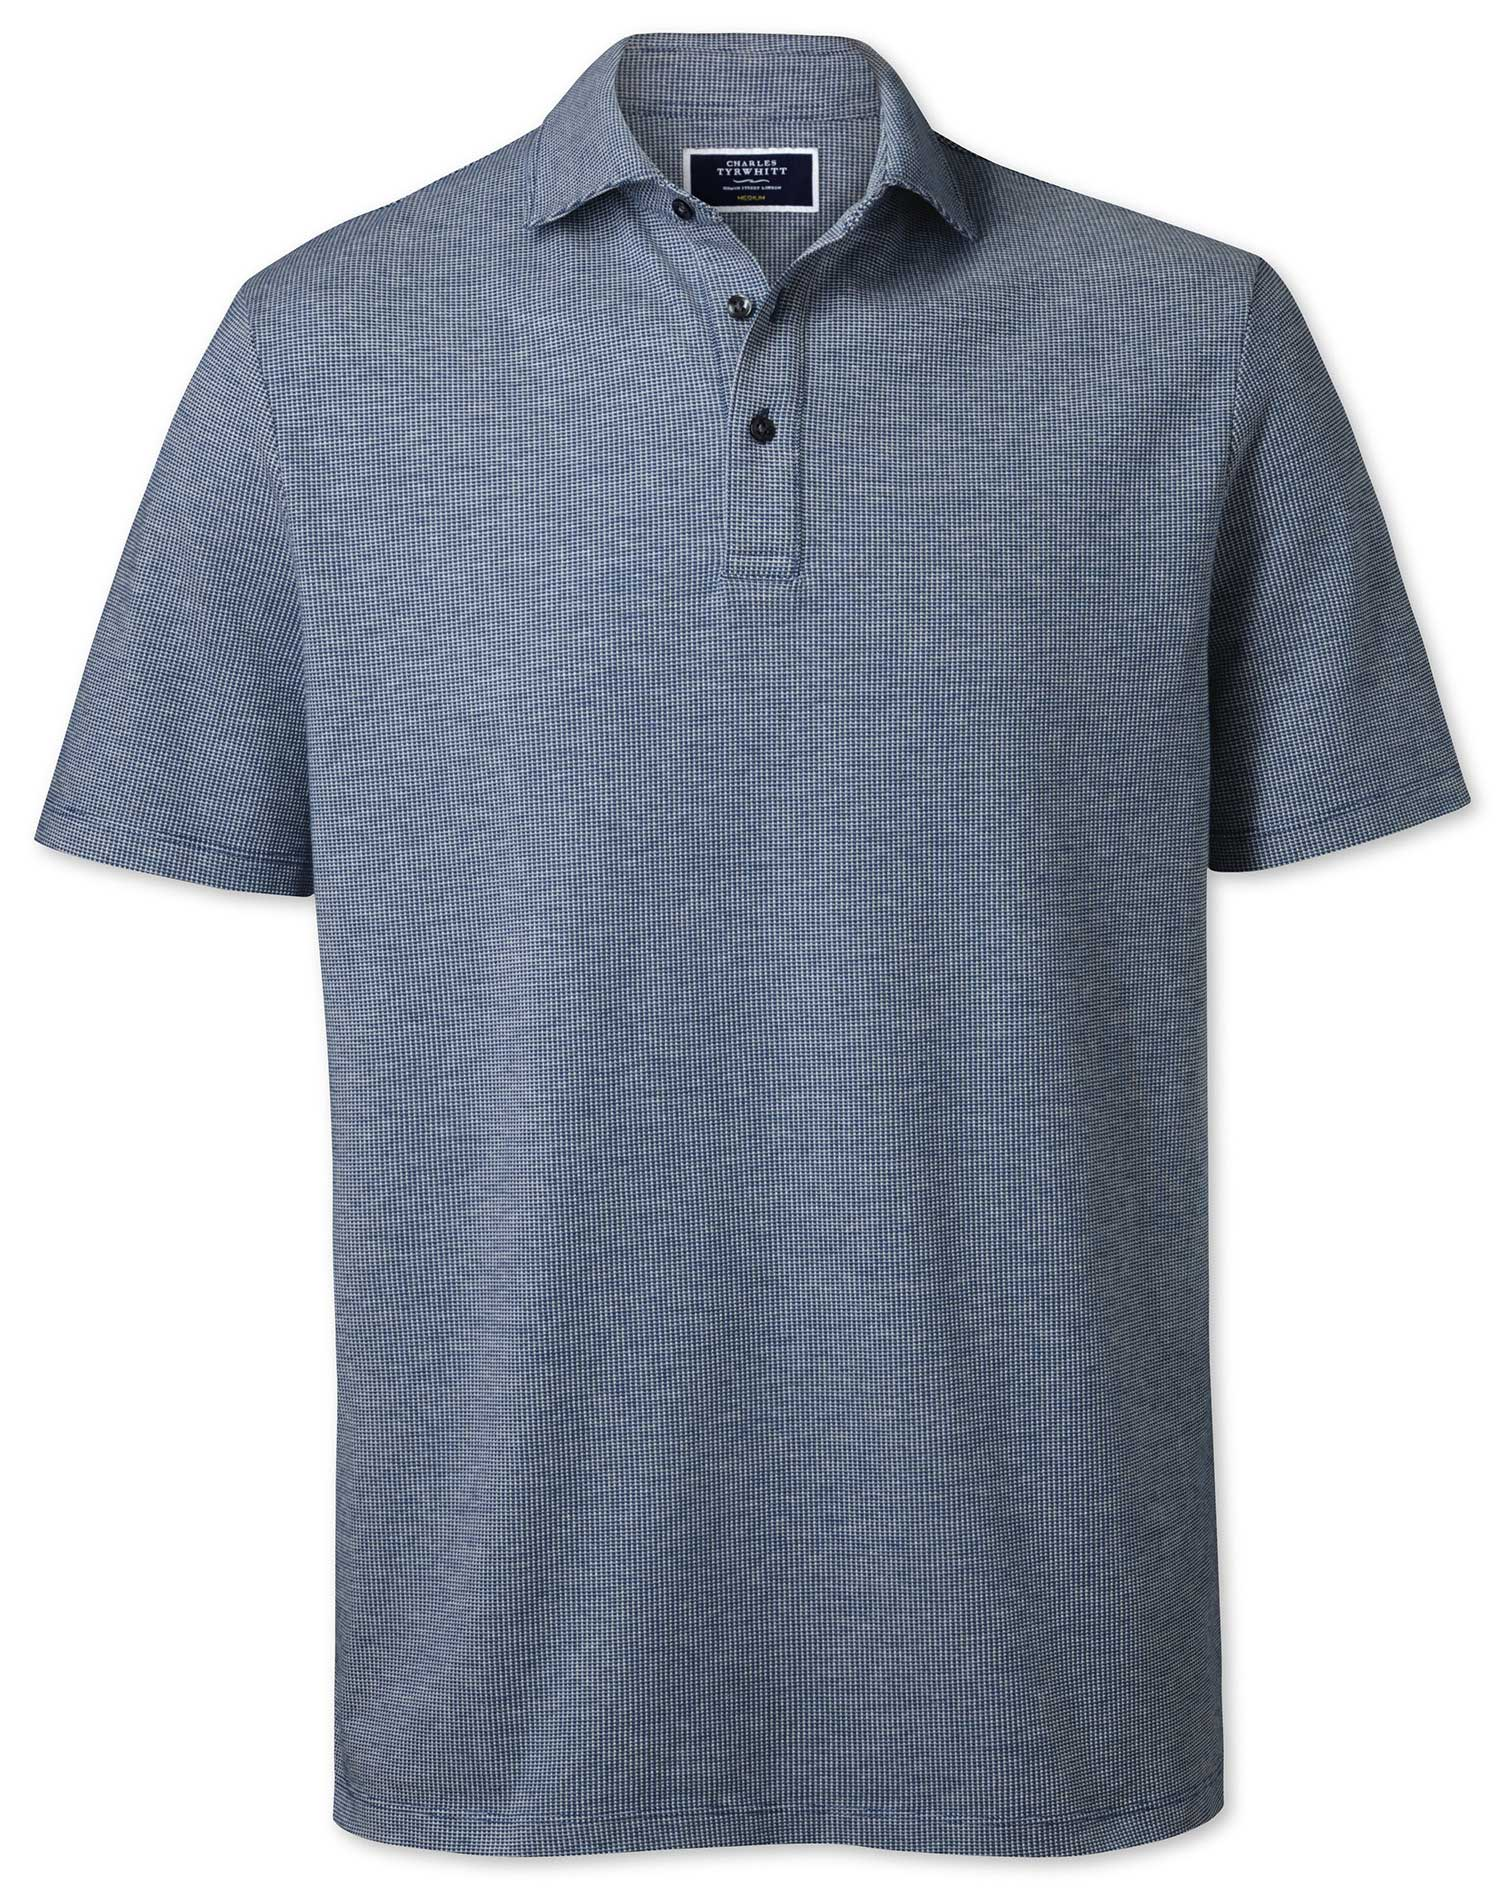 Blue and White Textured Cotton Polo Size Large by Charles Tyrwhitt